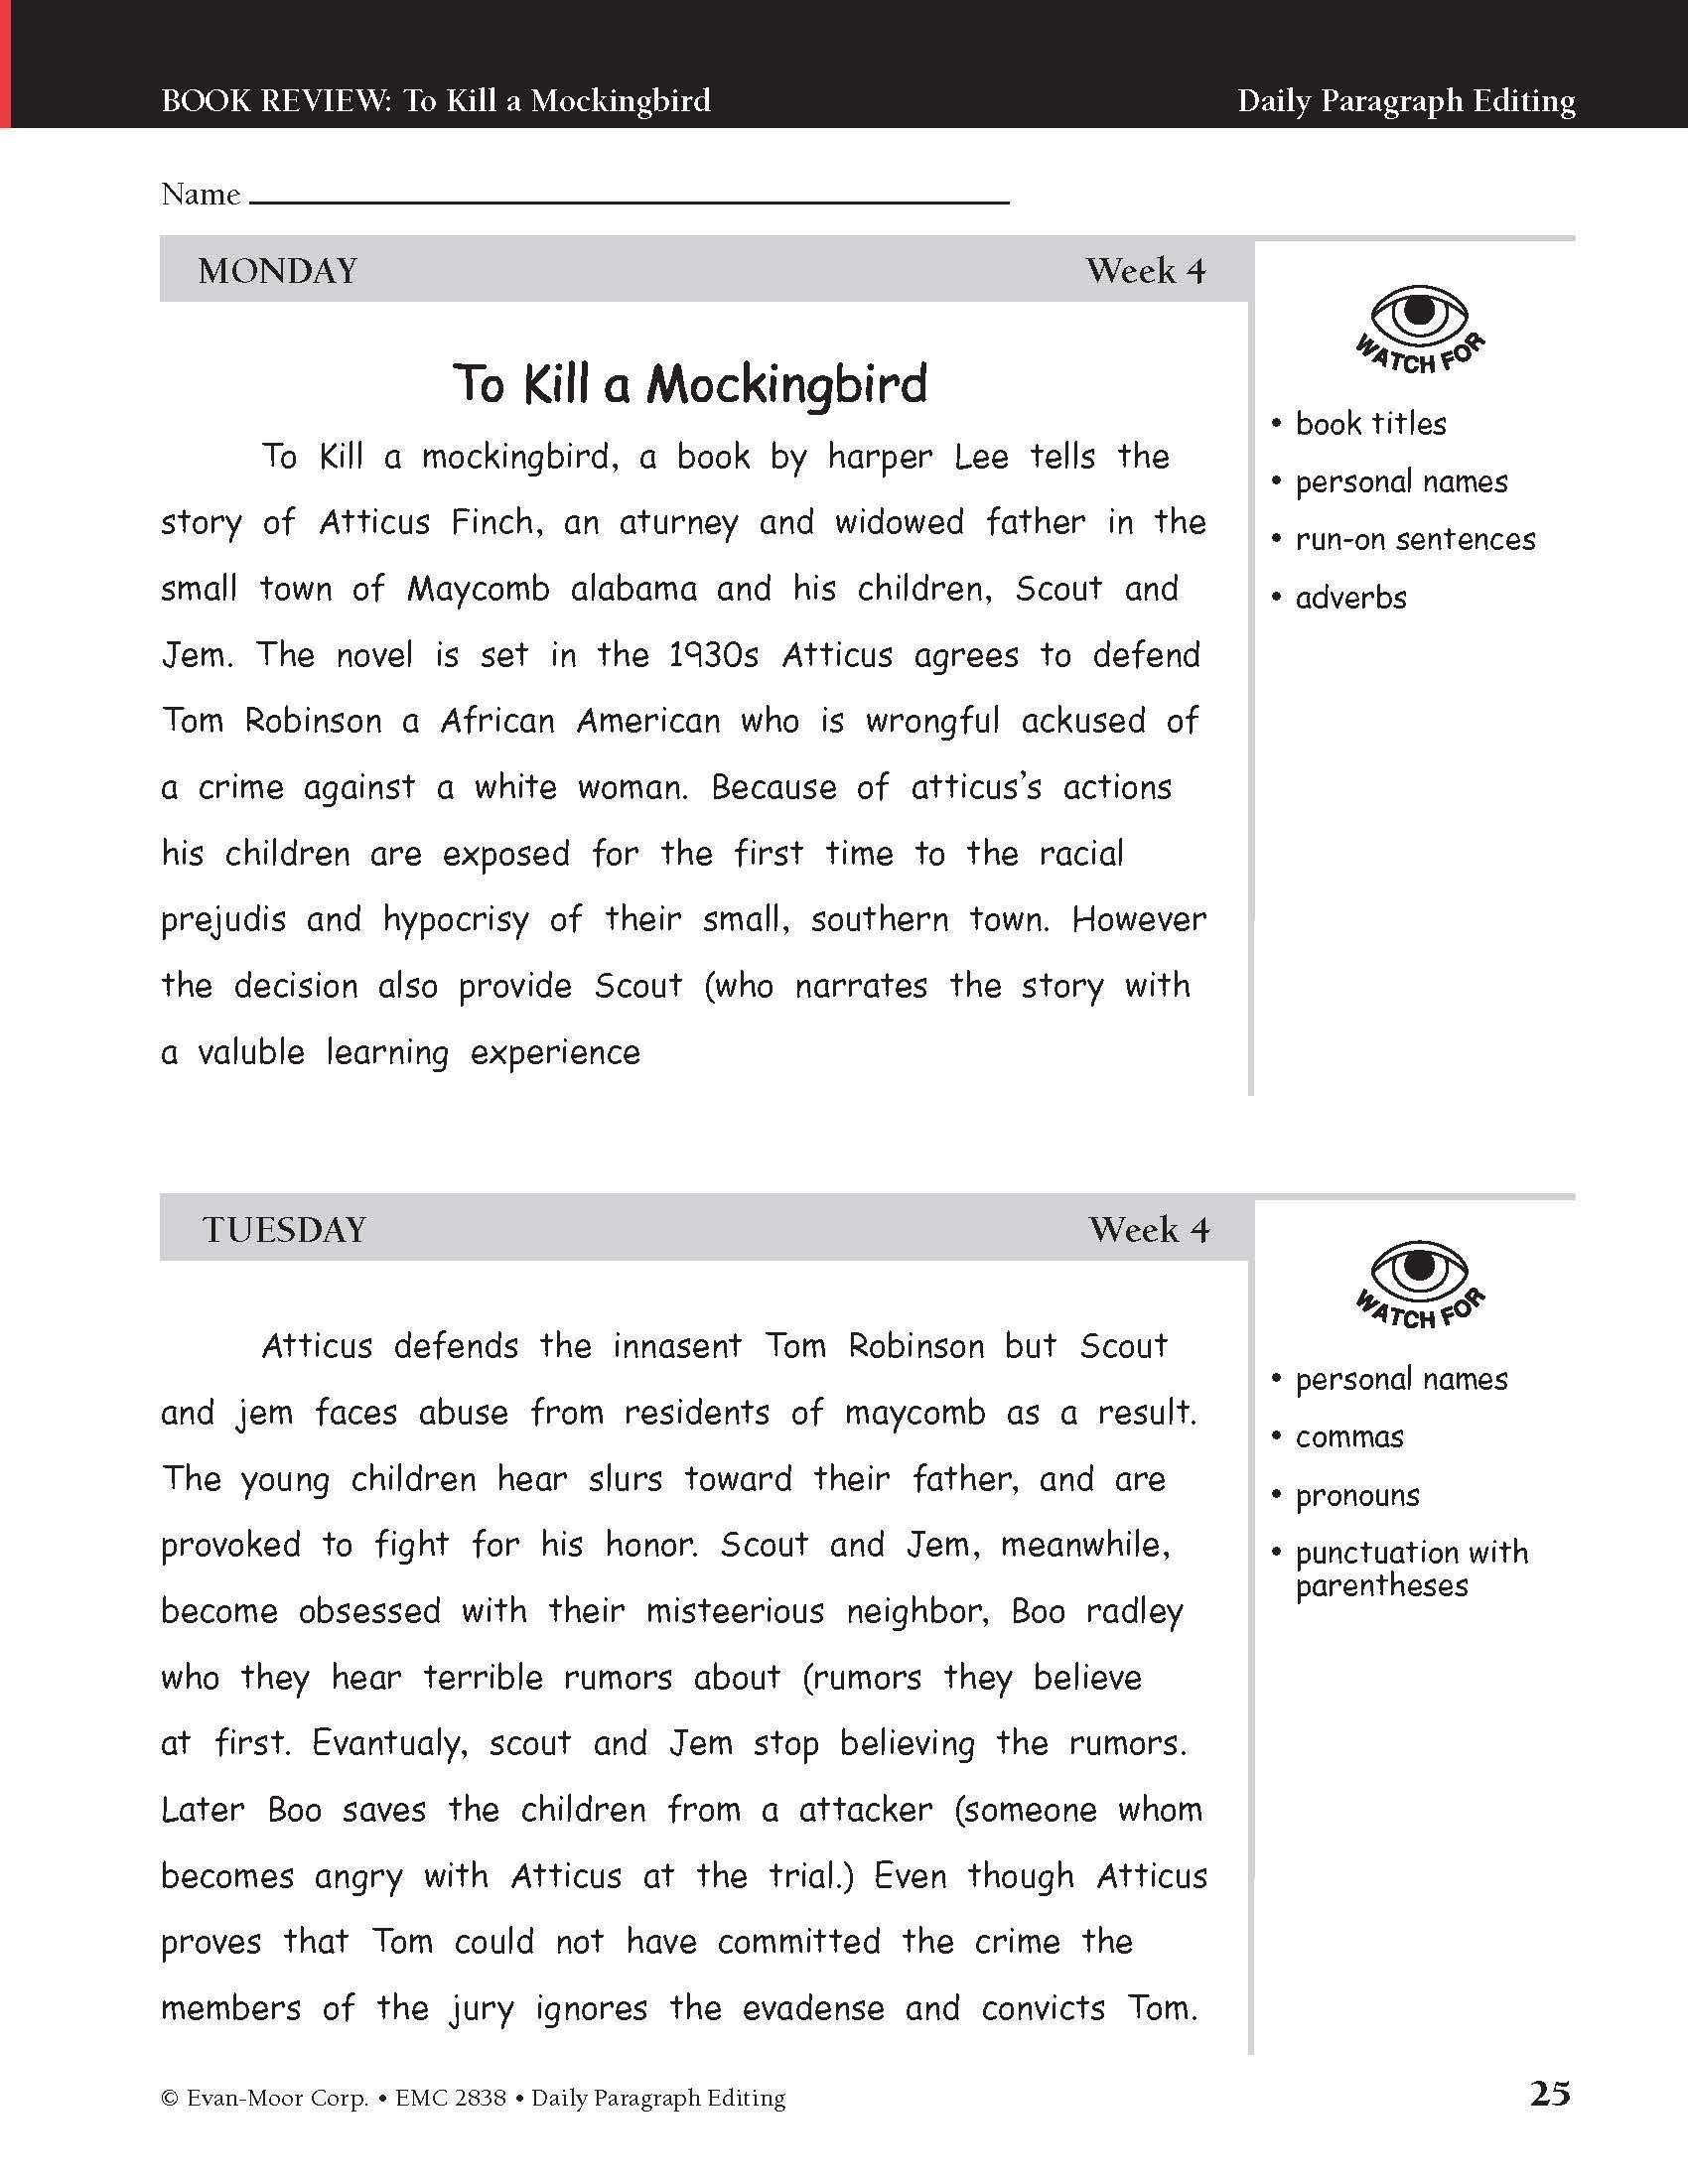 Daily Edit Worksheet Amazon Evan Moor Daily Paragraph Editing Grade 8